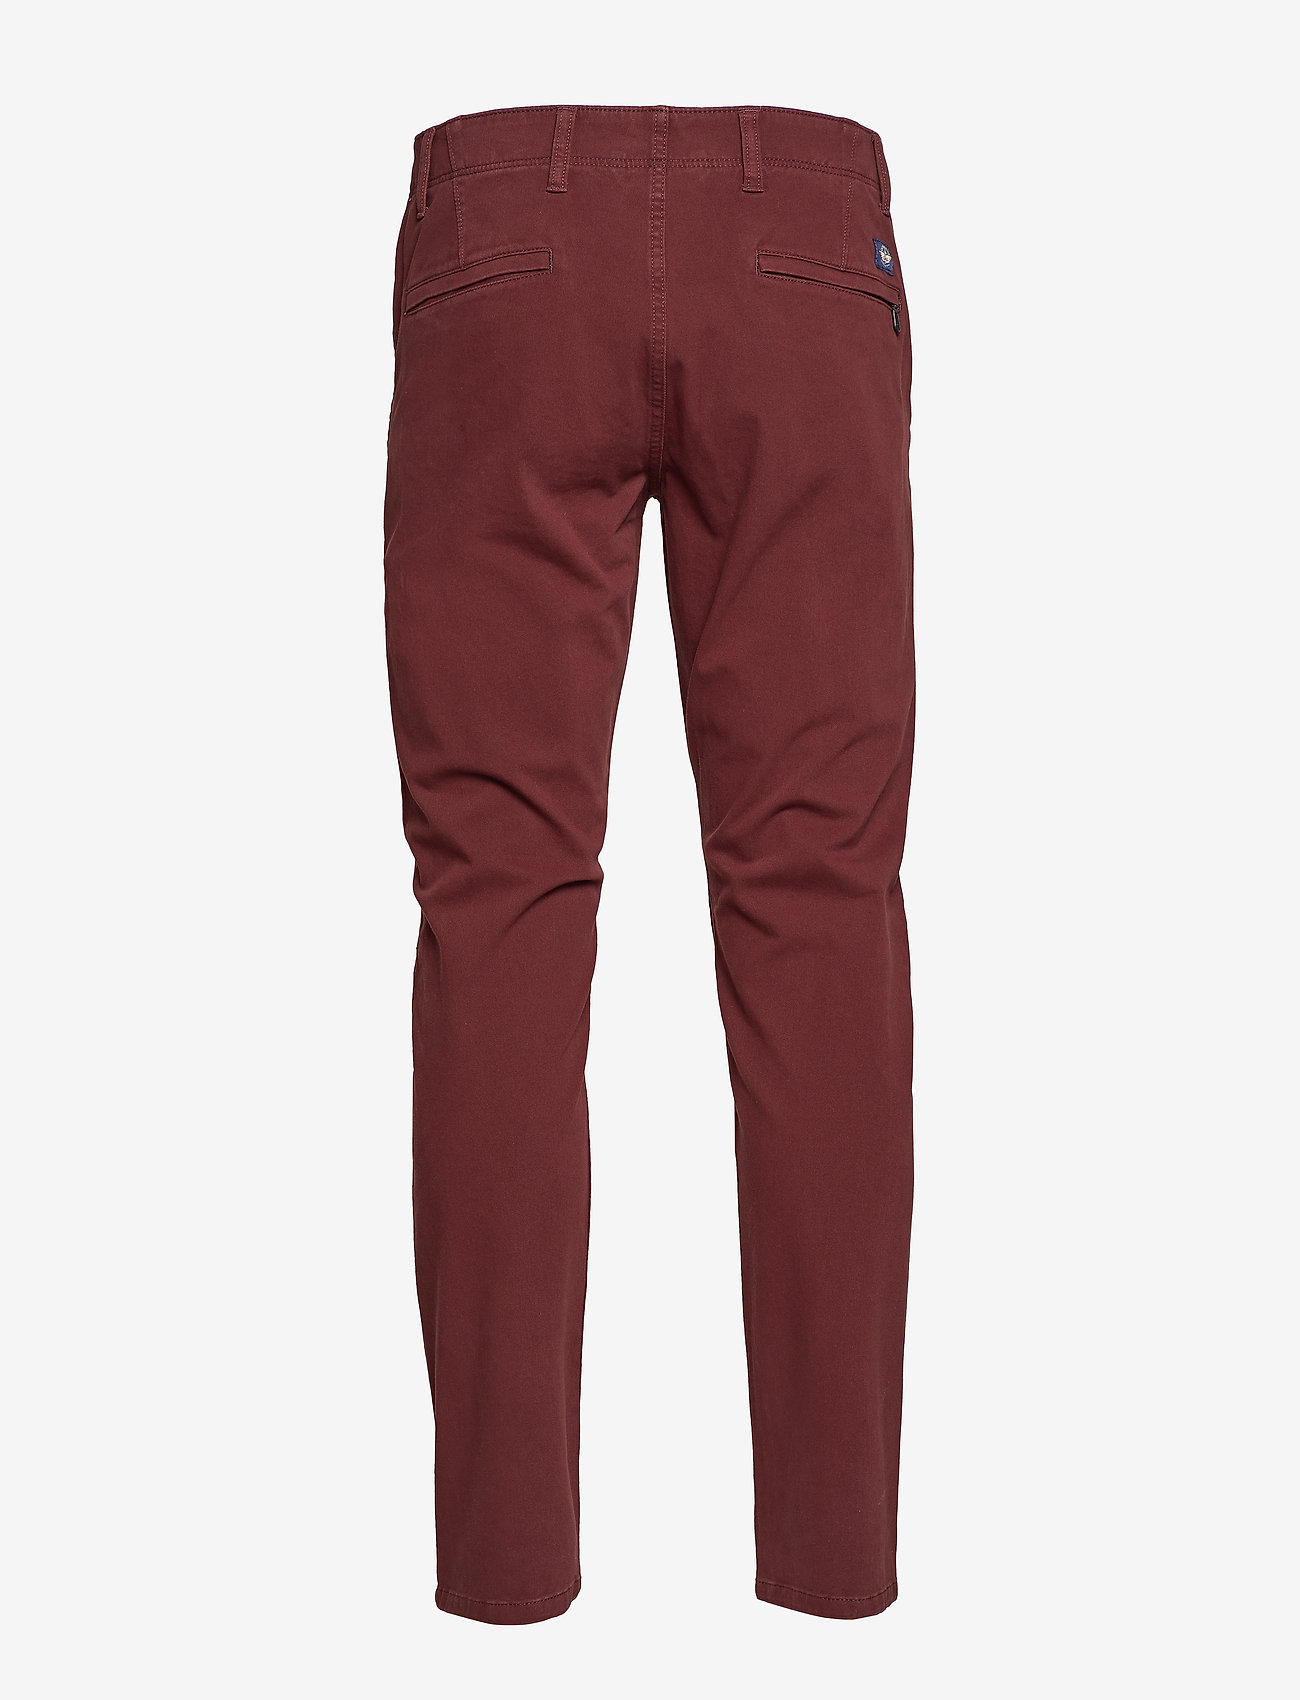 Dockers - ALPHA KHAKI 360 CHESTNUT RED - pantalons chino - reds - 1